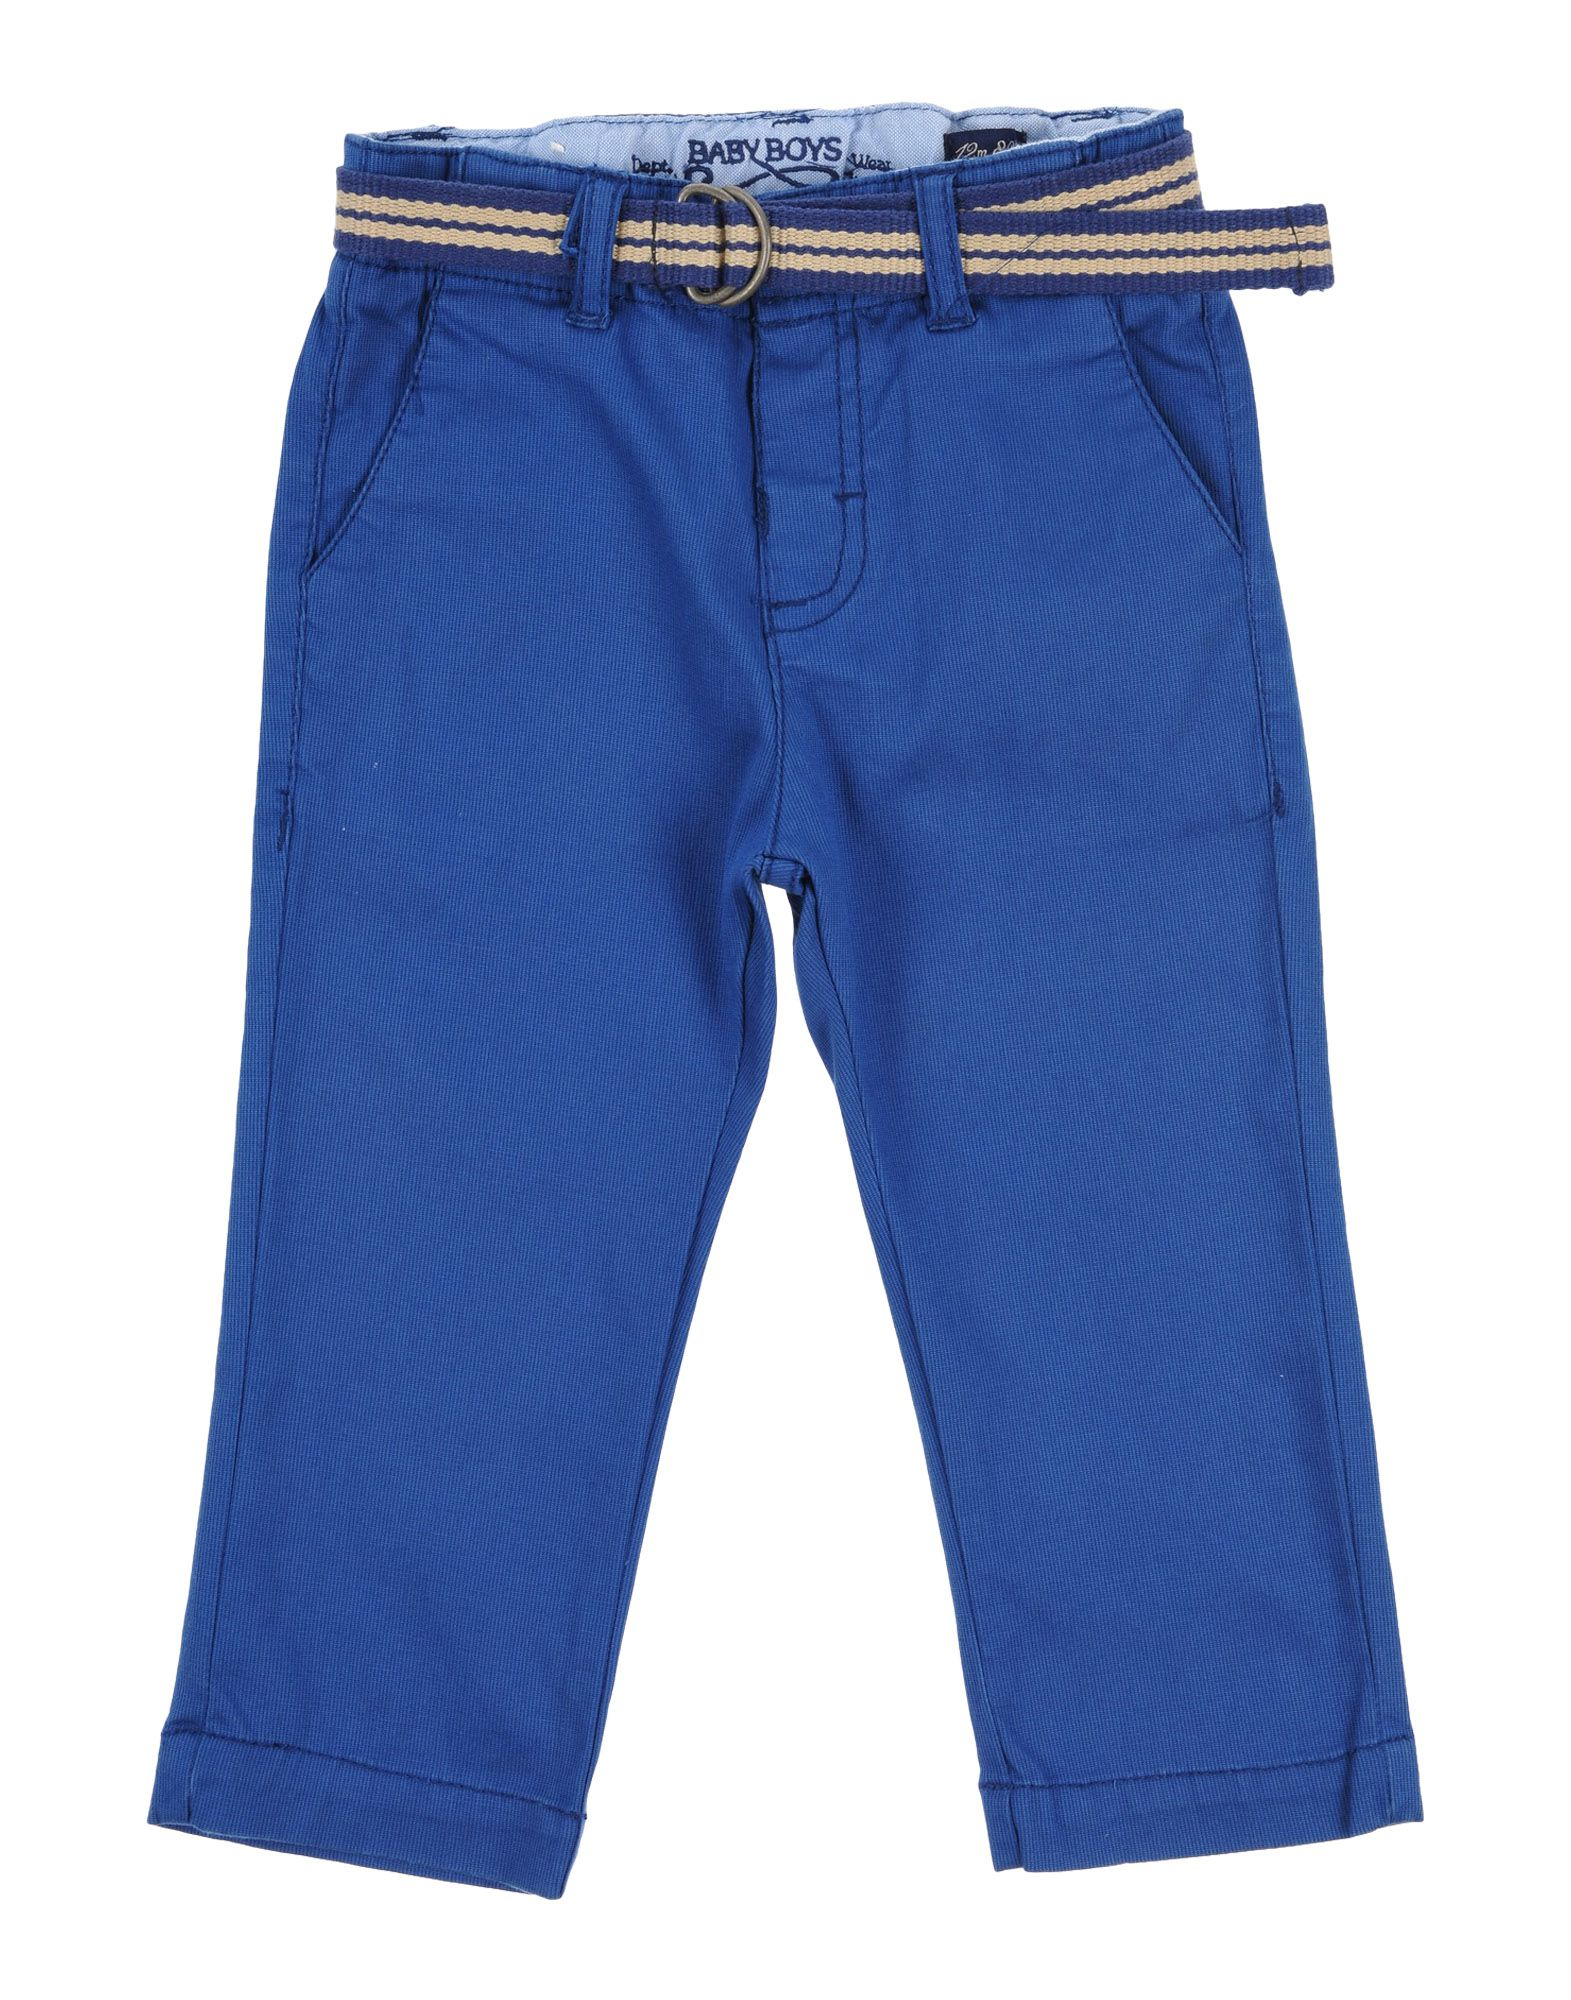 MAYORAL Casual Pants in Blue